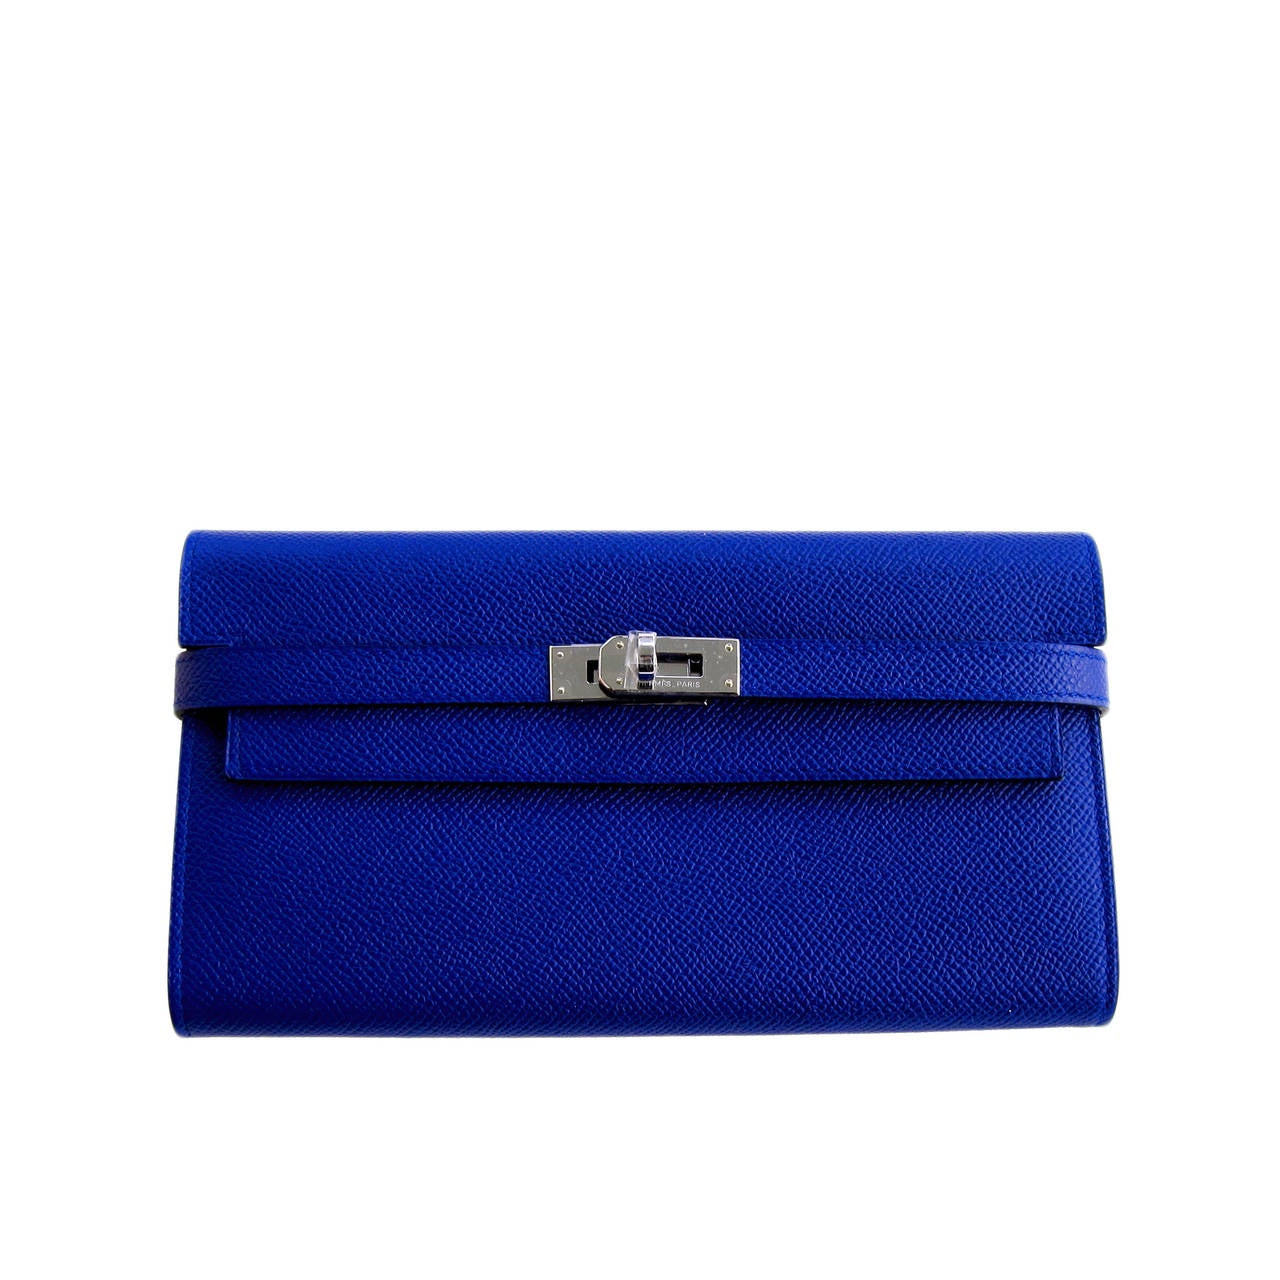 Hermes Blue Electric Epsom Kelly Long Wallet PHW Adore 1